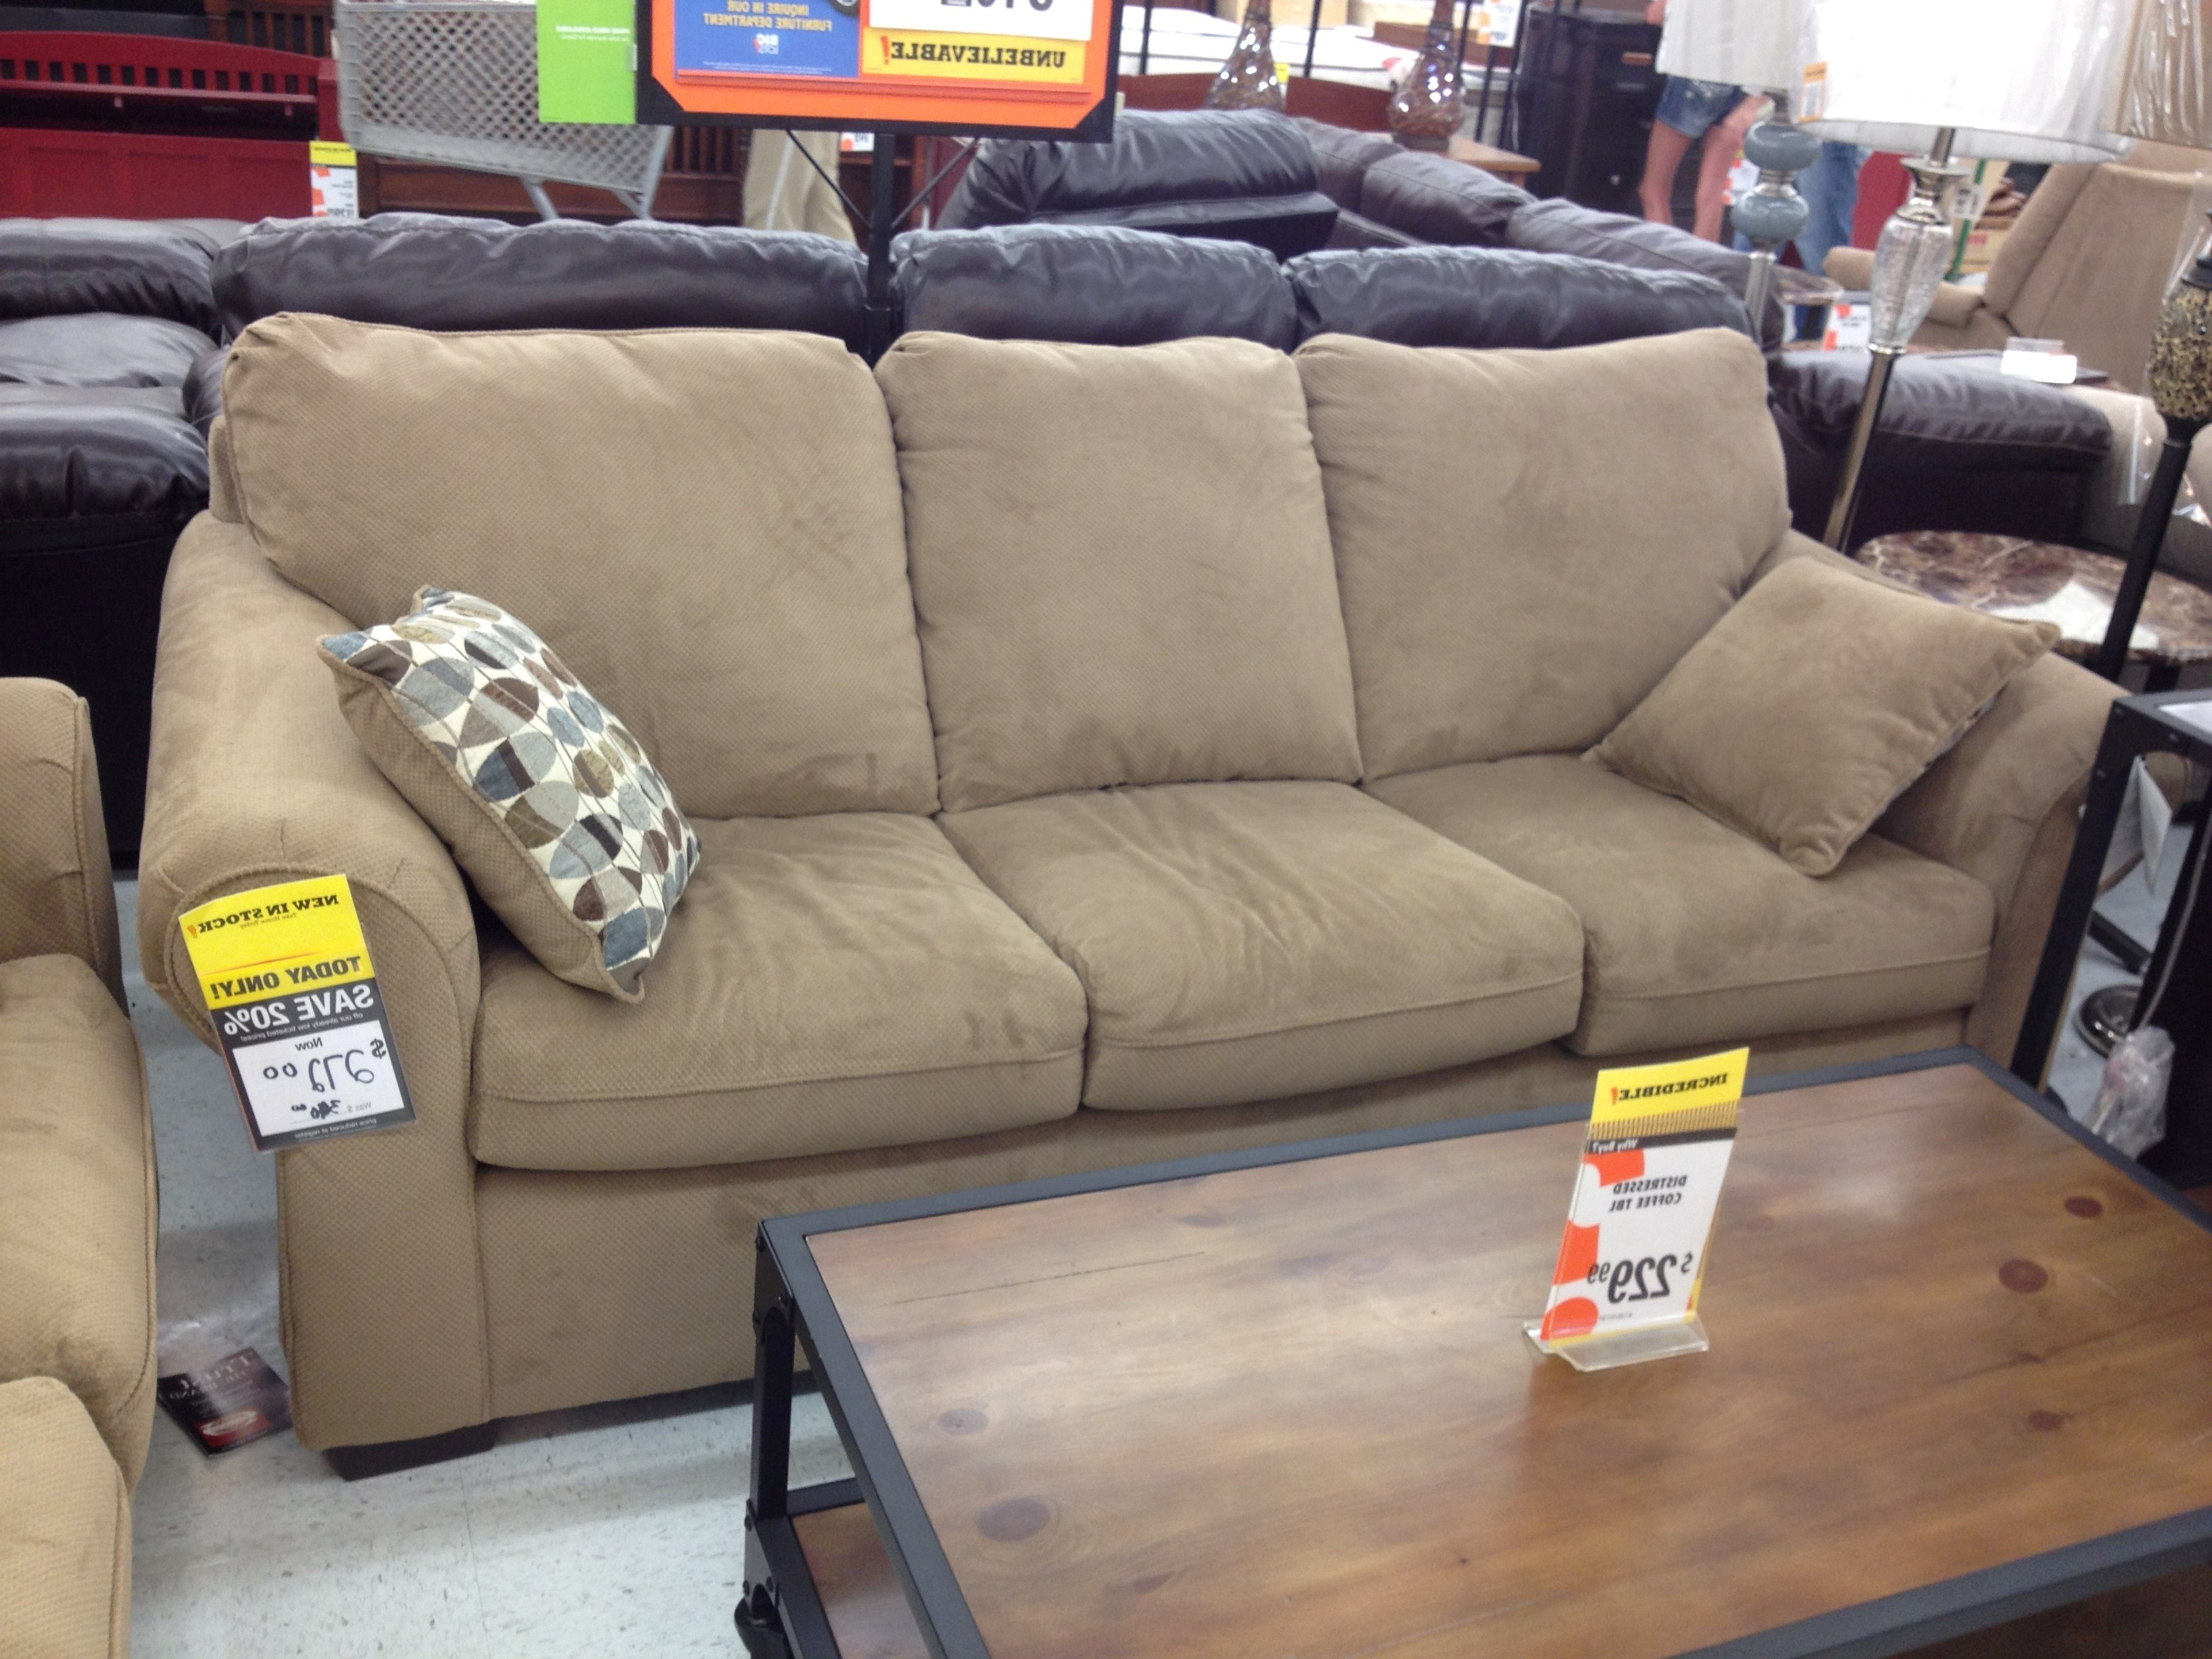 85 Awesome Biglots Sofa Home Design Big Lots Sofas Sectionals Bed Intended For Big Lots Sofas (Image 4 of 15)